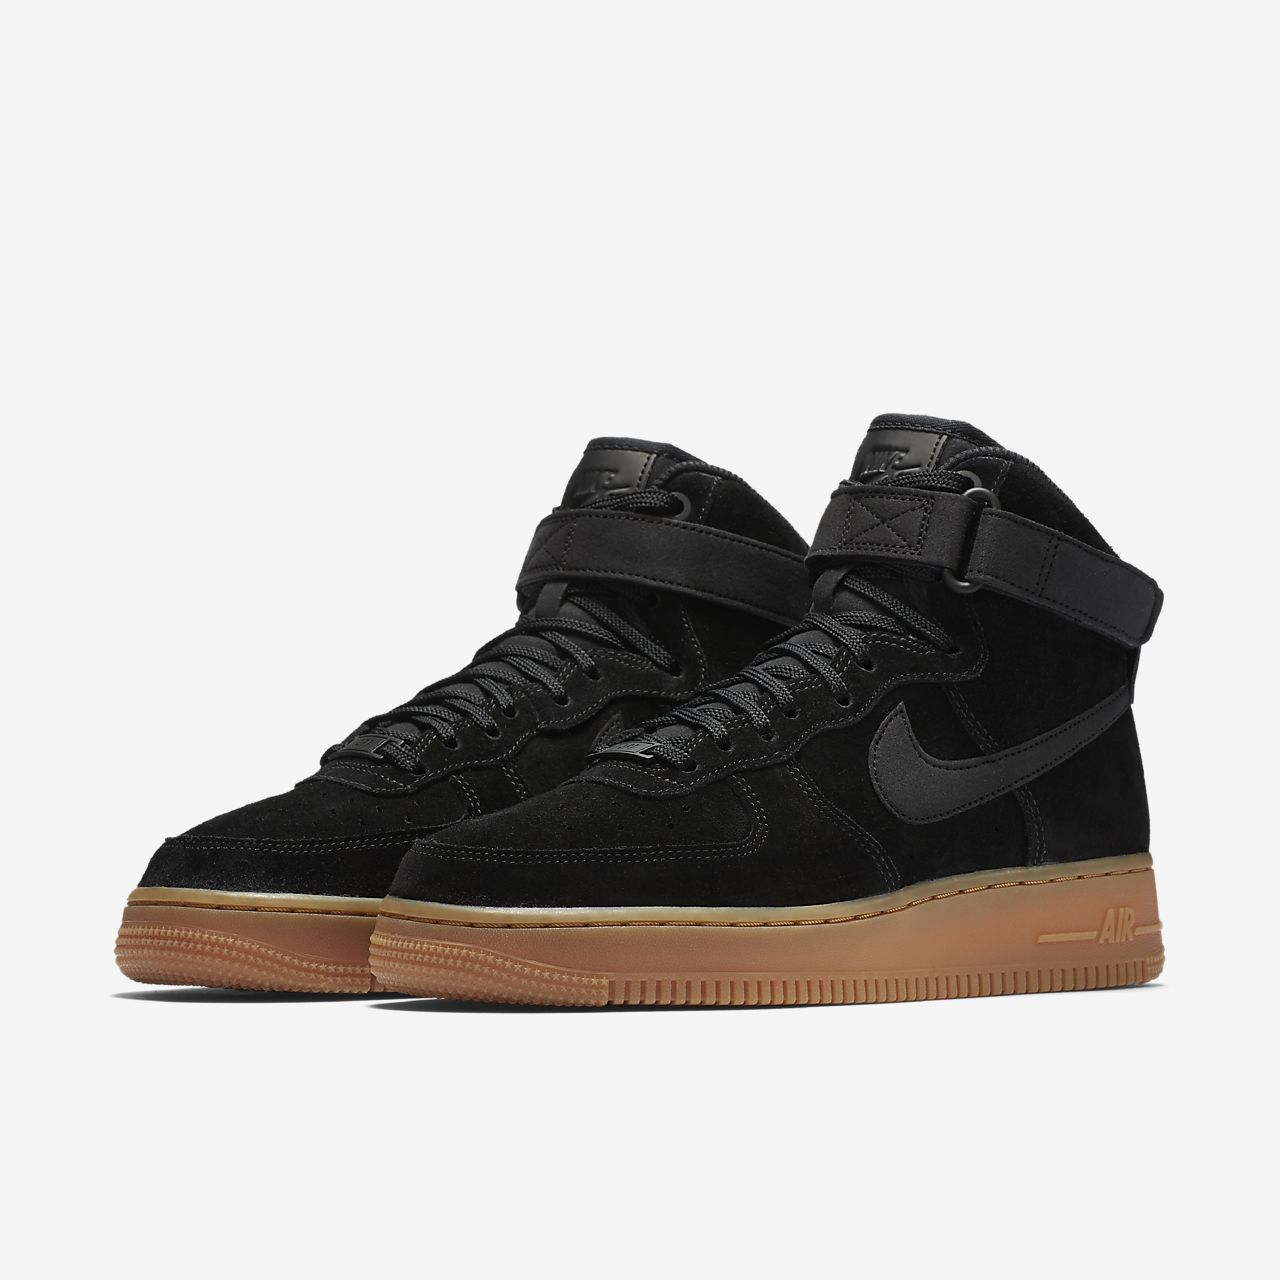 womens lunar nike air force 1 high black nz